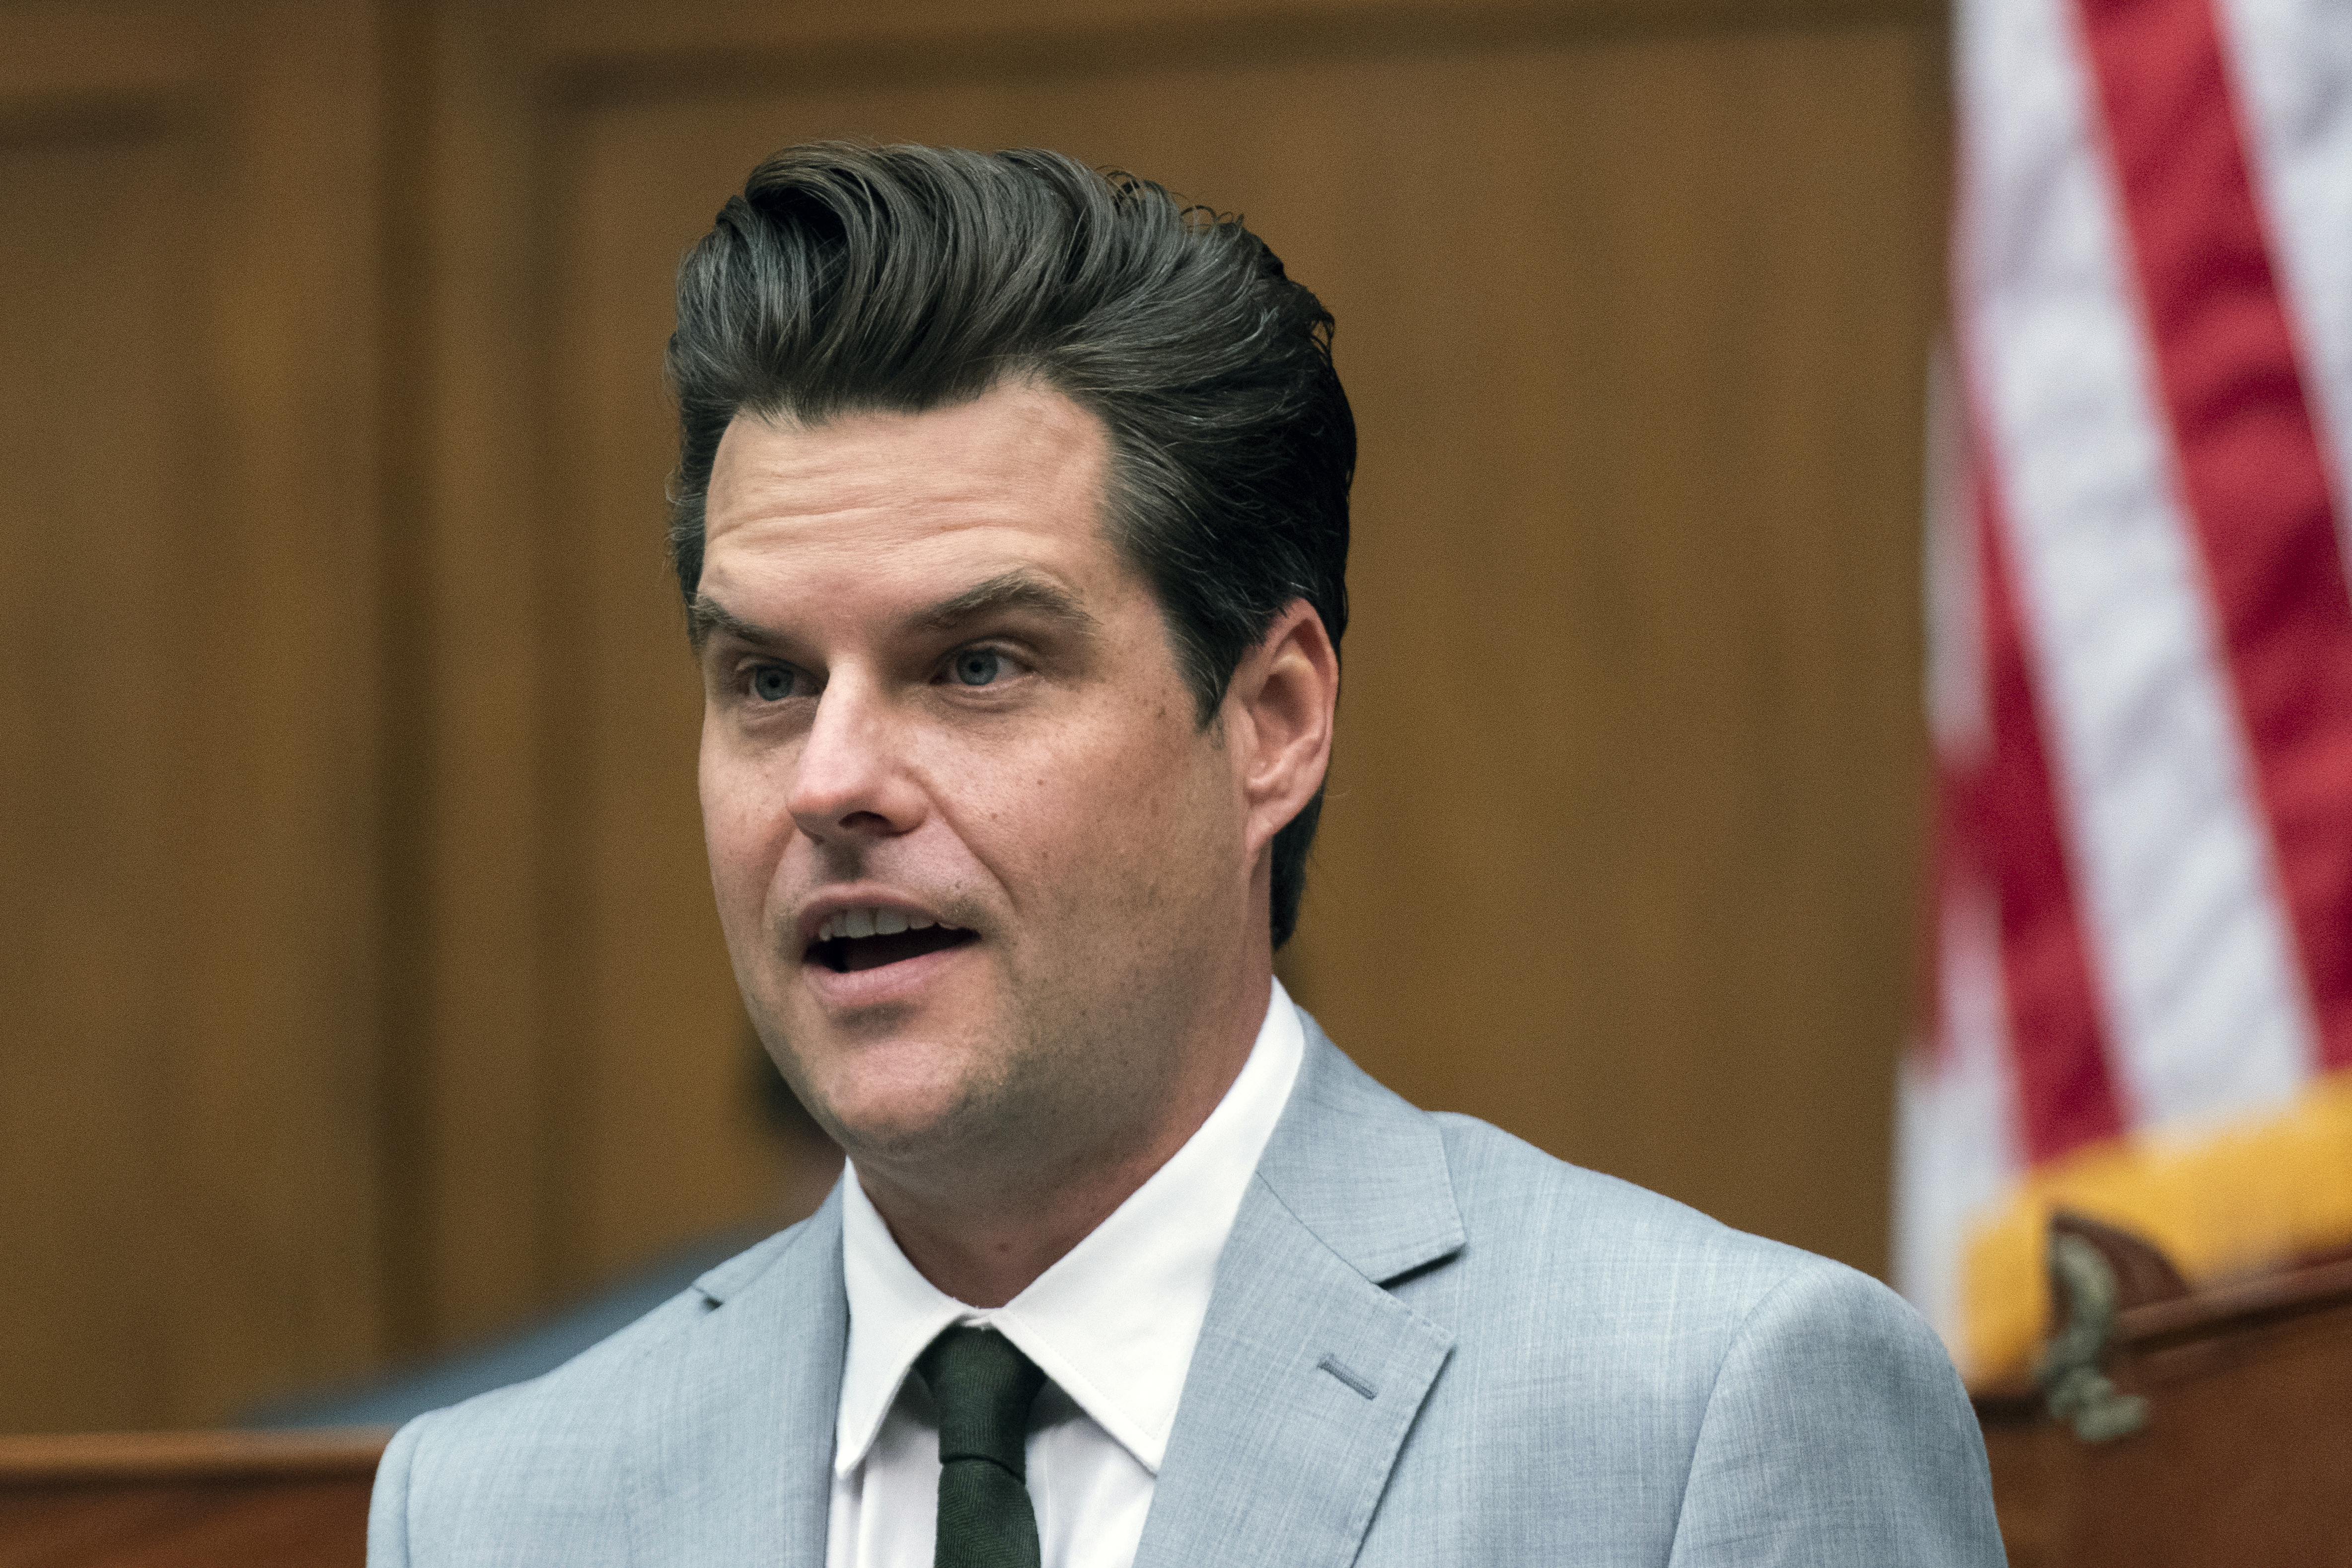 In this April 14, 2021 file photo, Rep. Matt Gaetz, R-Fla., questions witness during a House Armed Services Committee hearing on Capitol Hill in Washington.